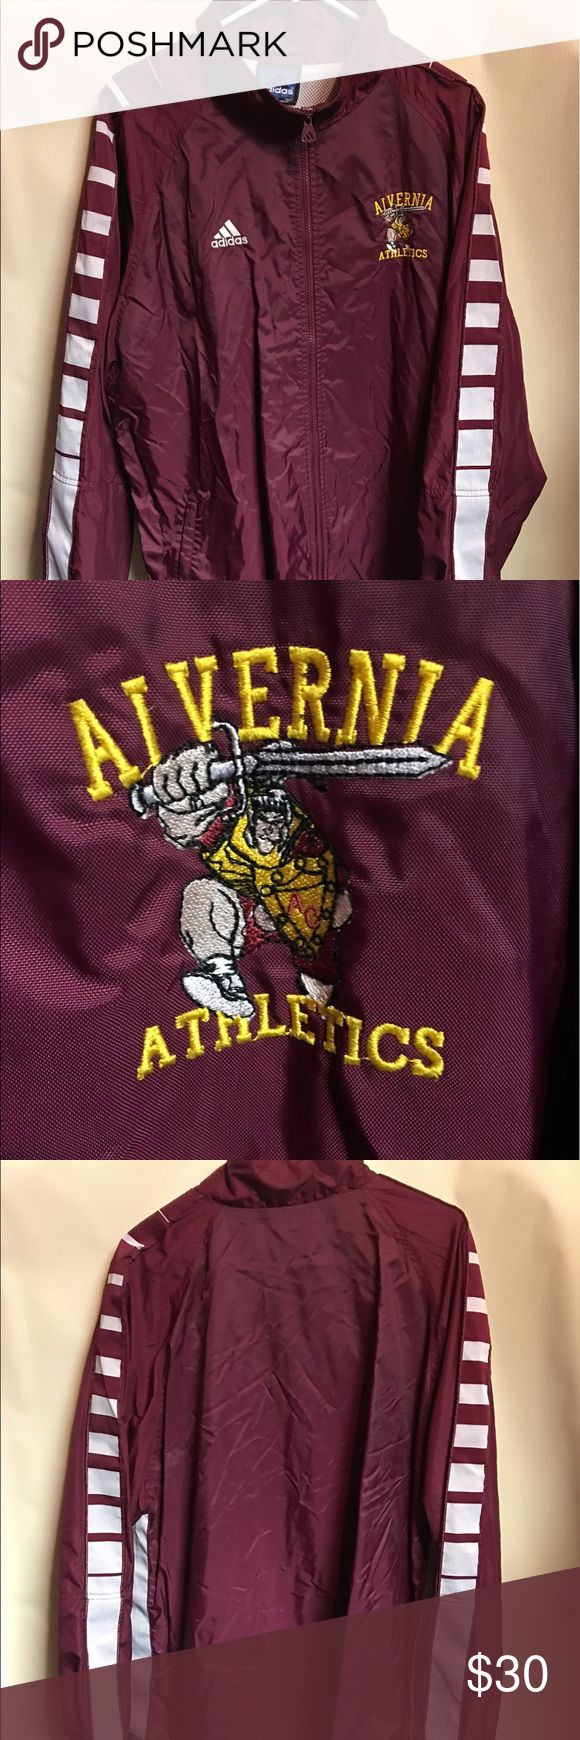 Vintage Adidas Alvernia Atletics Team Windbreaker Gently worn Adidas Alvernia University Athletic Soccer Trackjacket. This is a Men's Large.it is in great condition. Vintage Jackets & Coats Windbreakers